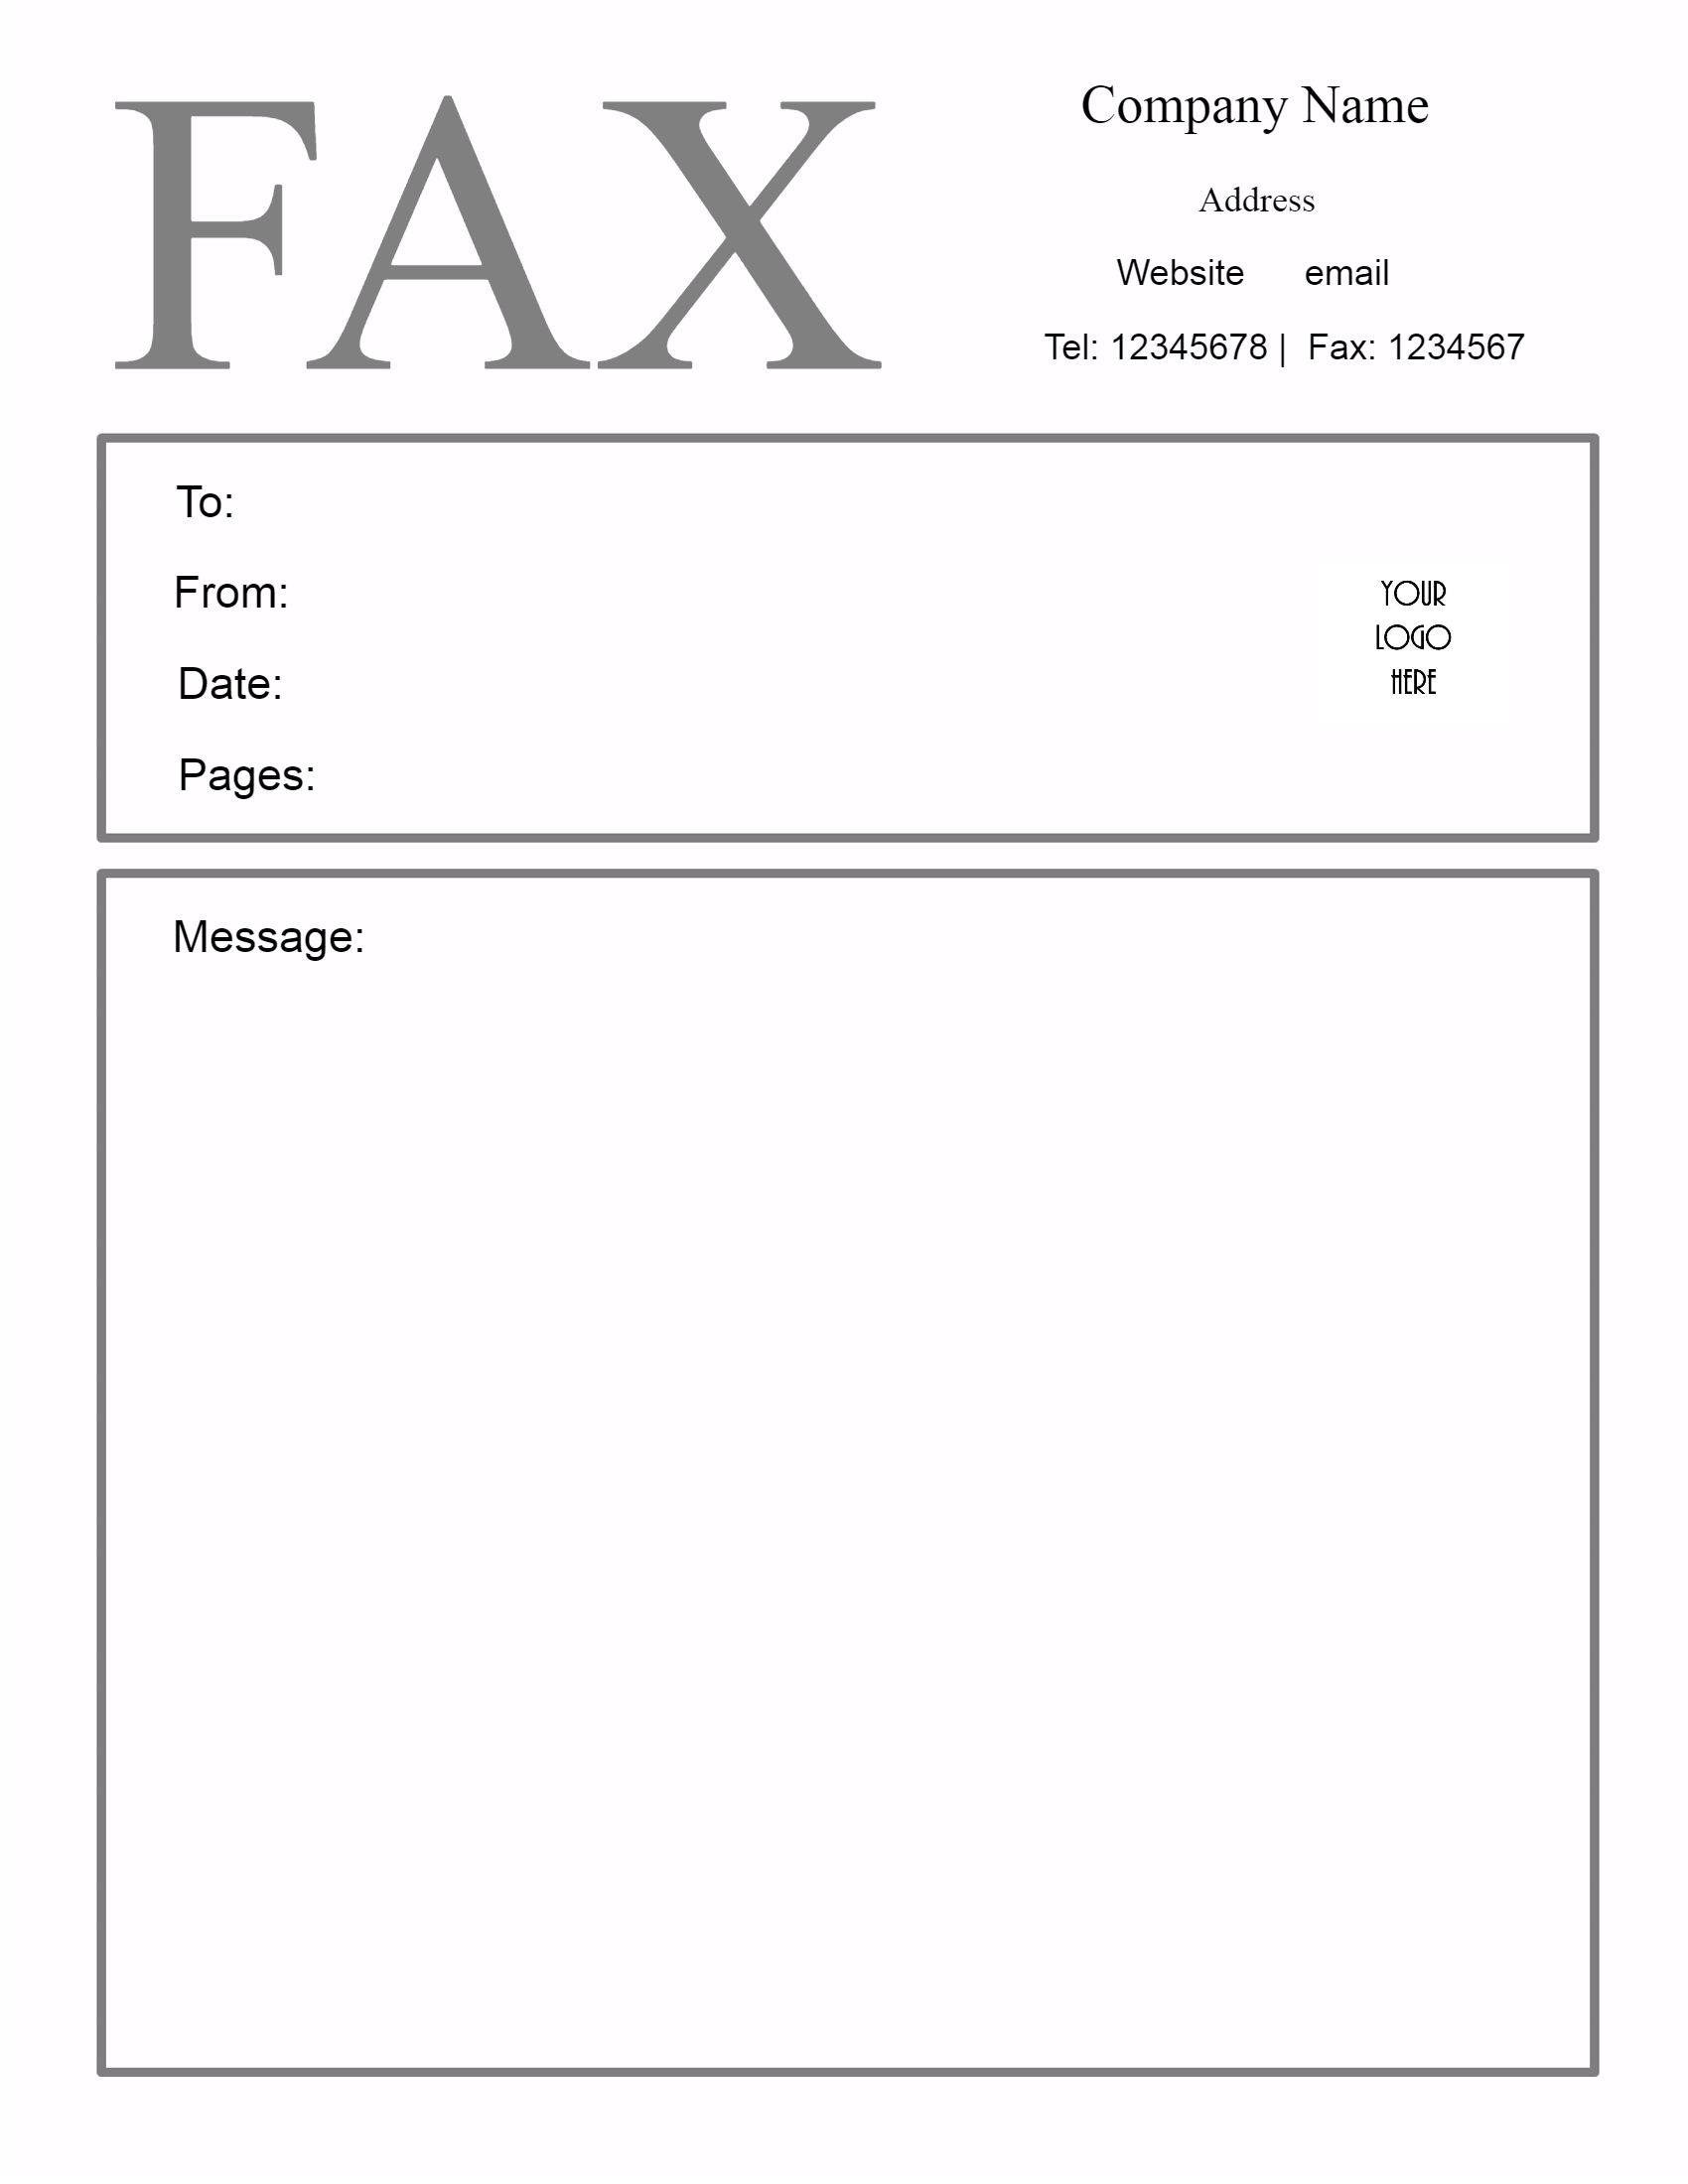 Clipart fax cover sheet image free Fax Cover Sheet Free. Fax Cover Sheet Templates,12 Free Fax Cover ... image free